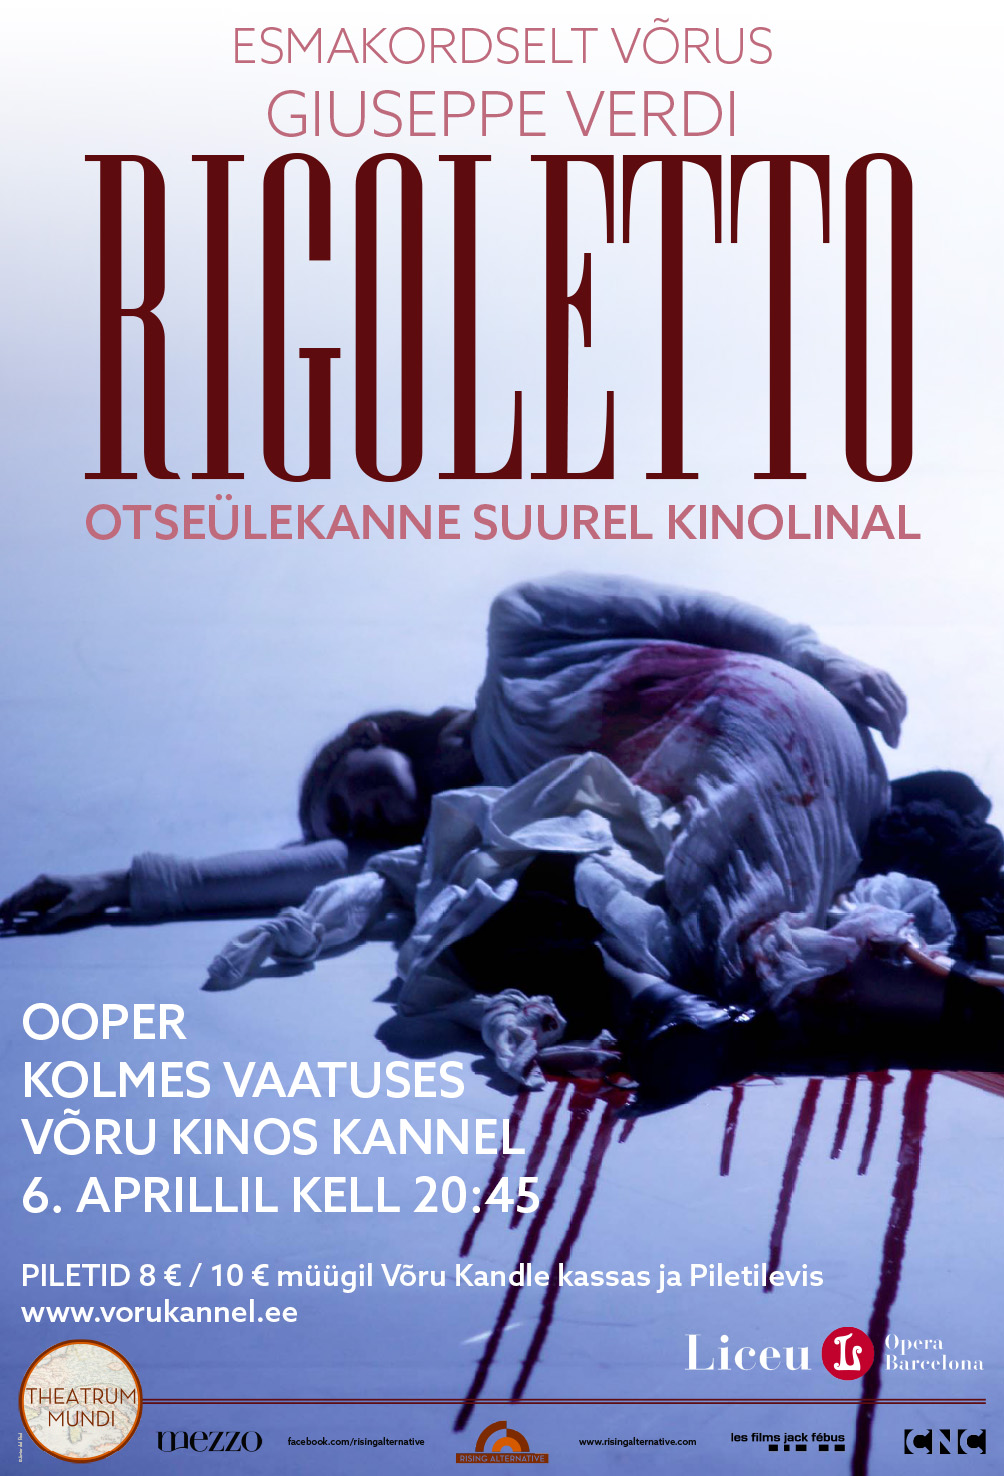 http://vorukannel.ee/files/rigoletto.jpg